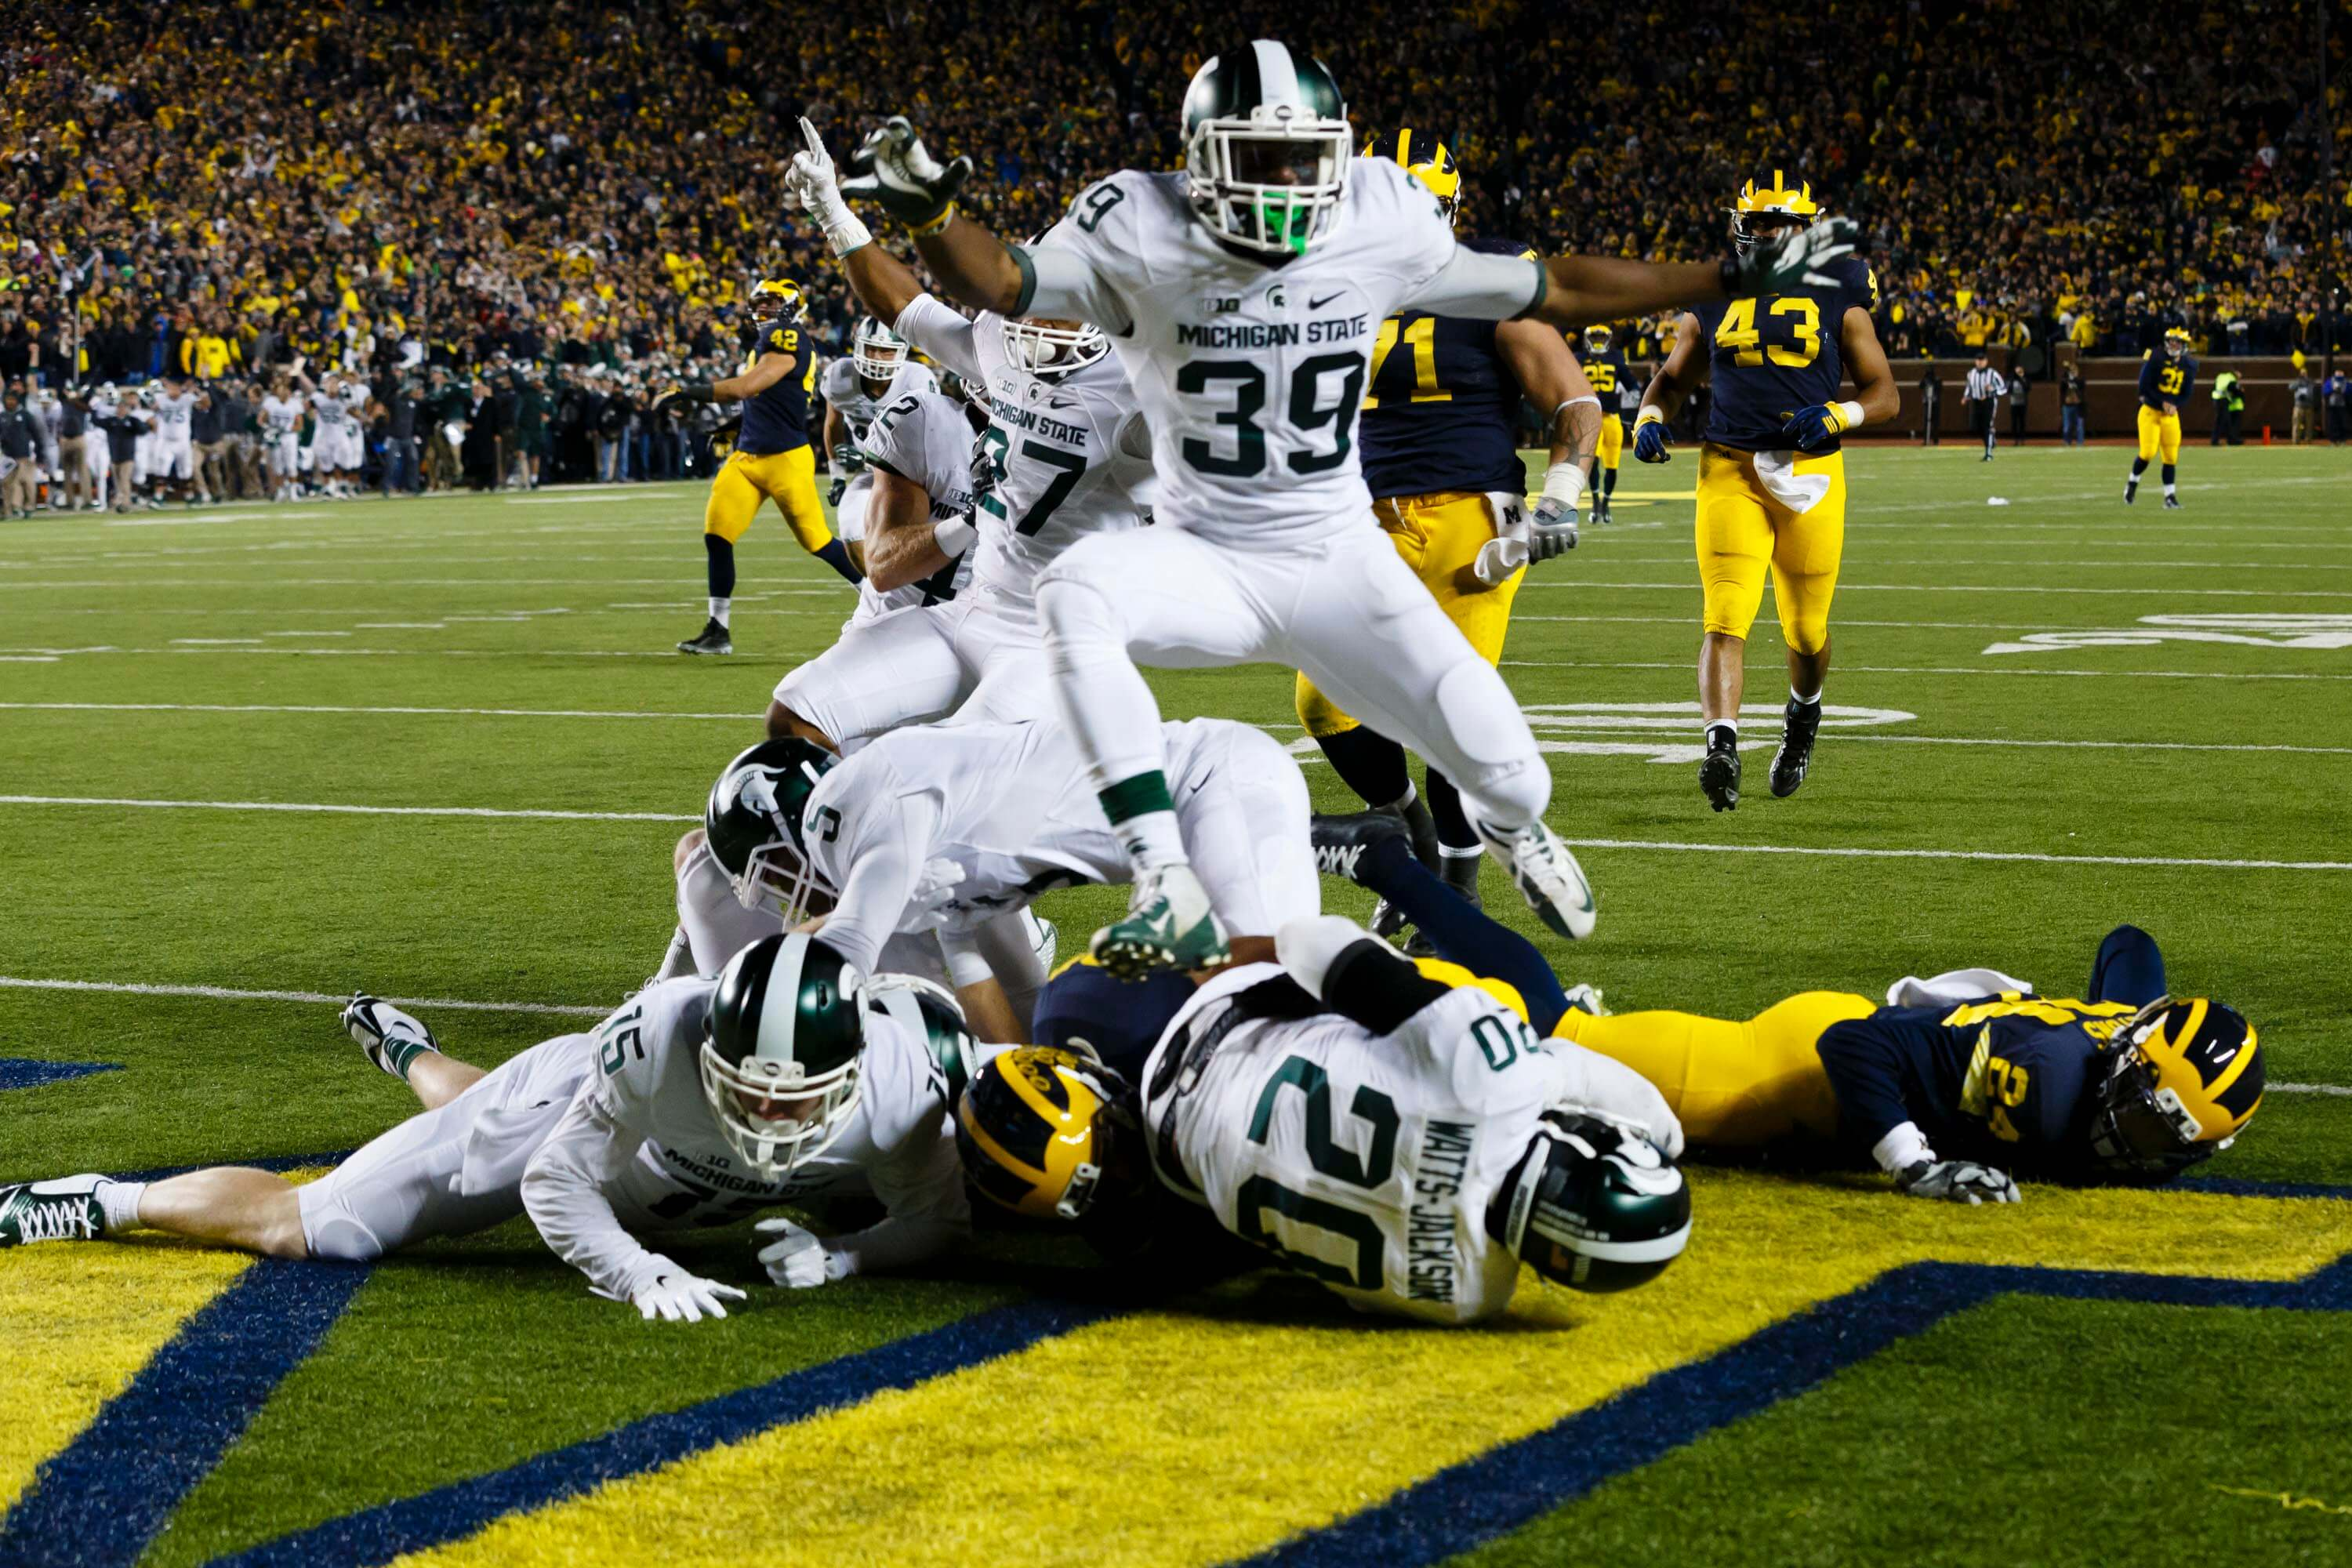 football michigan state college sports spartans spartan wolverines williams vs game wolverine